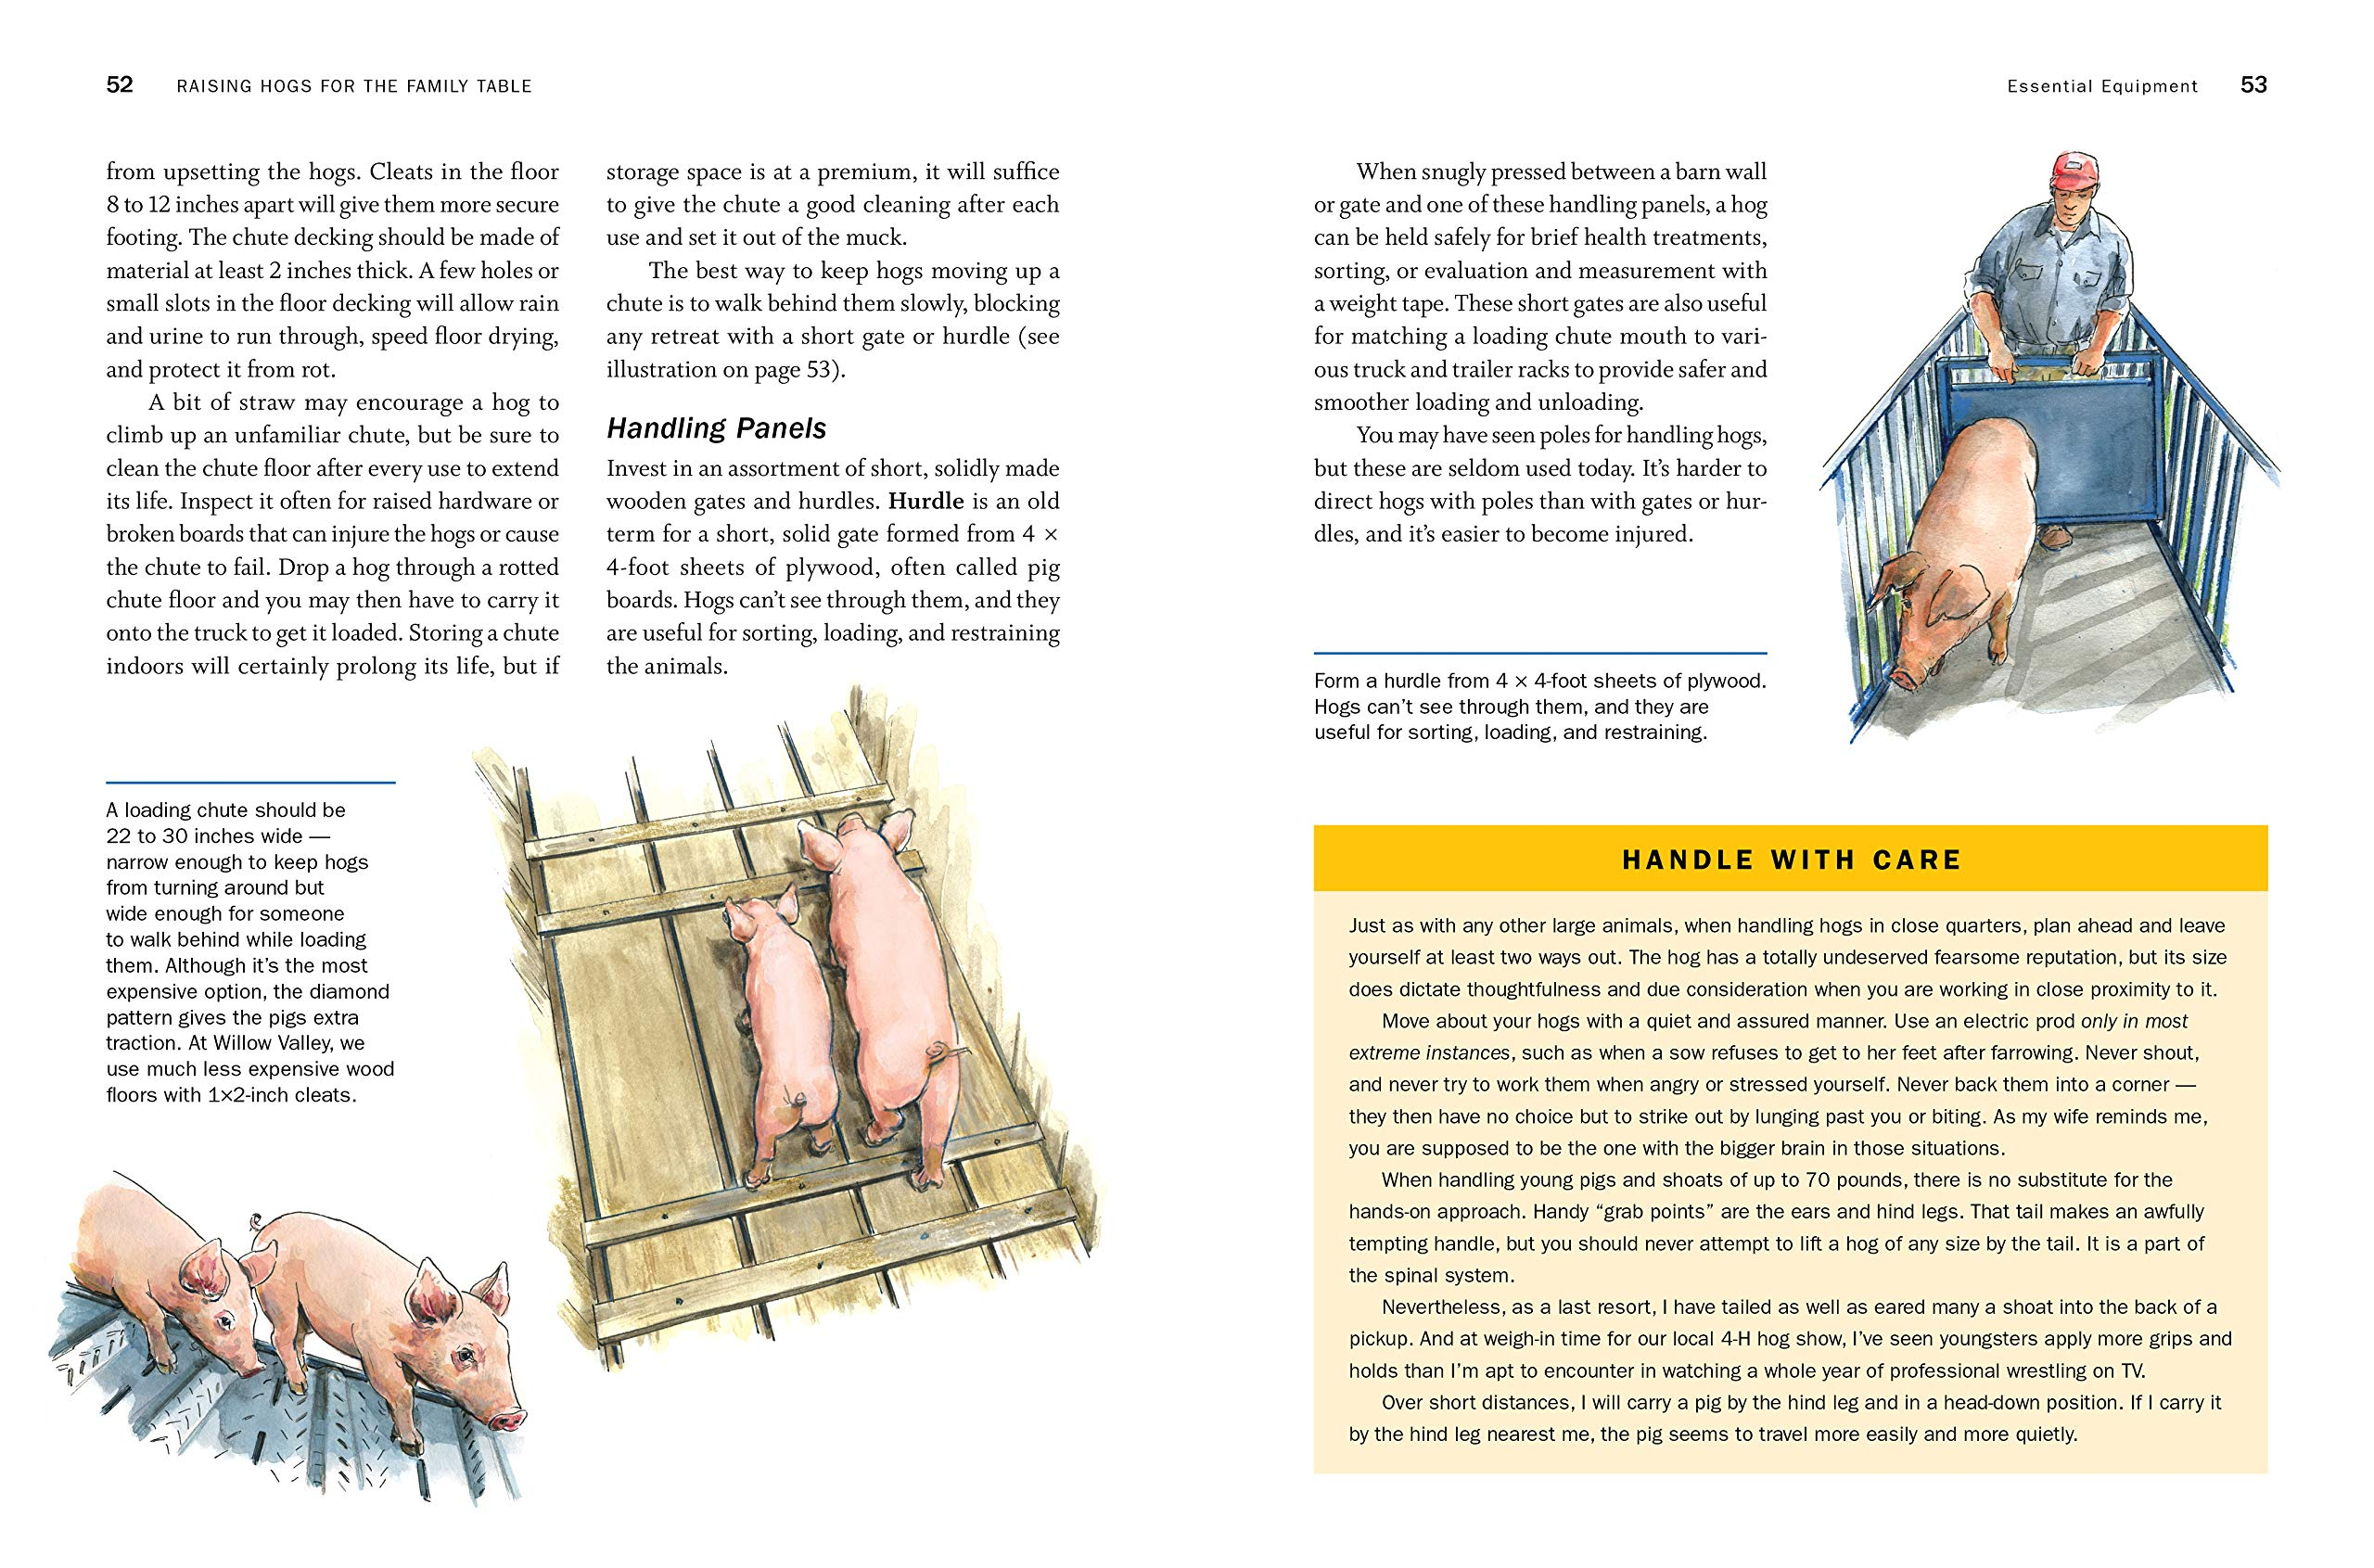 storey's guide to raising pigs, 4th edition: care, facilities, management,  breeds: kelly klober: 9781635860429: amazon com: books